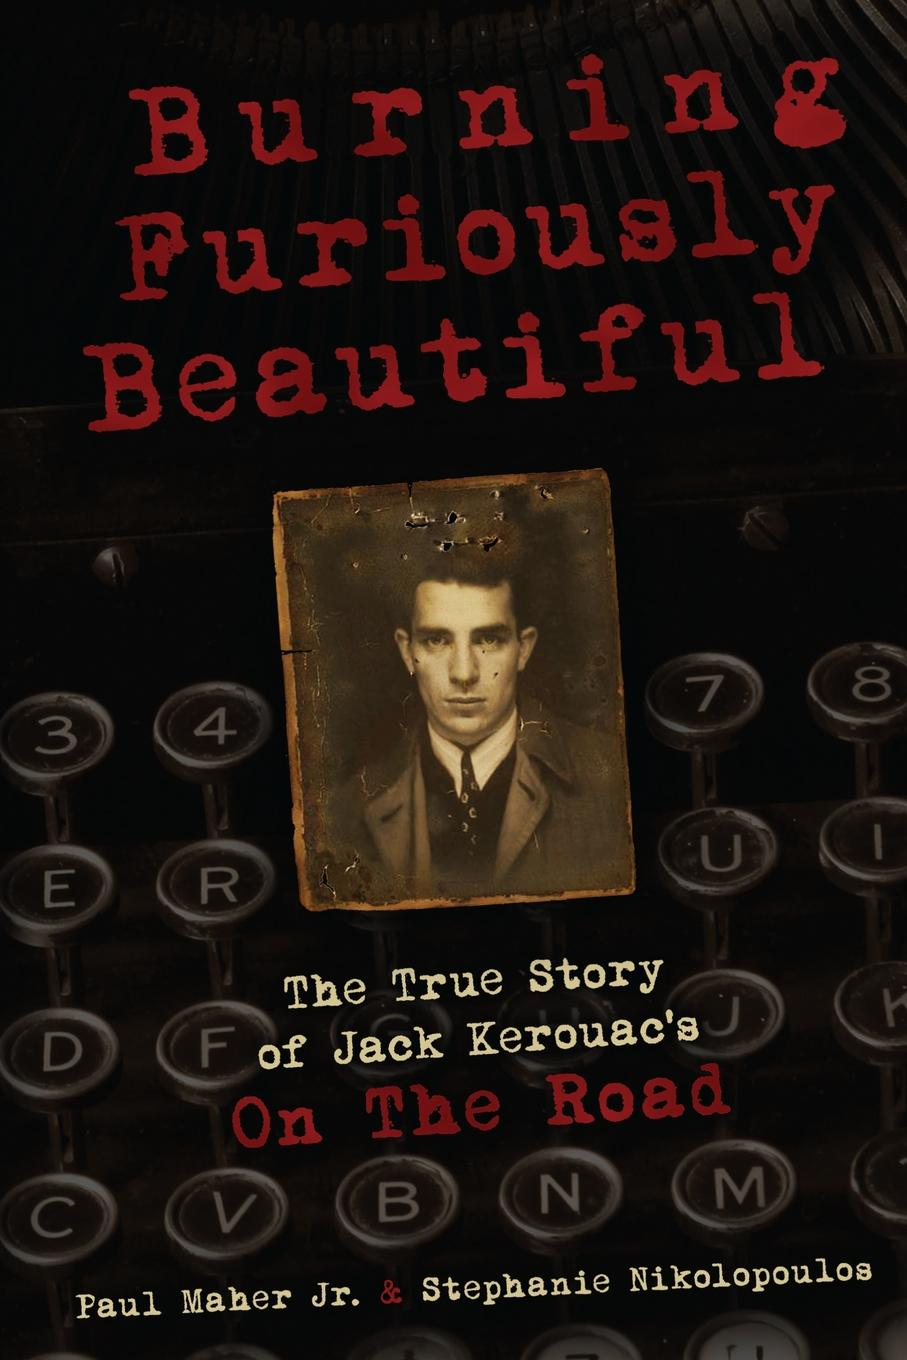 Stephanie Nikolopoulos, Paul Maher Jr. Burning Furiously Beautiful. The True Story of Jack Kerouac.s On the Road on the road